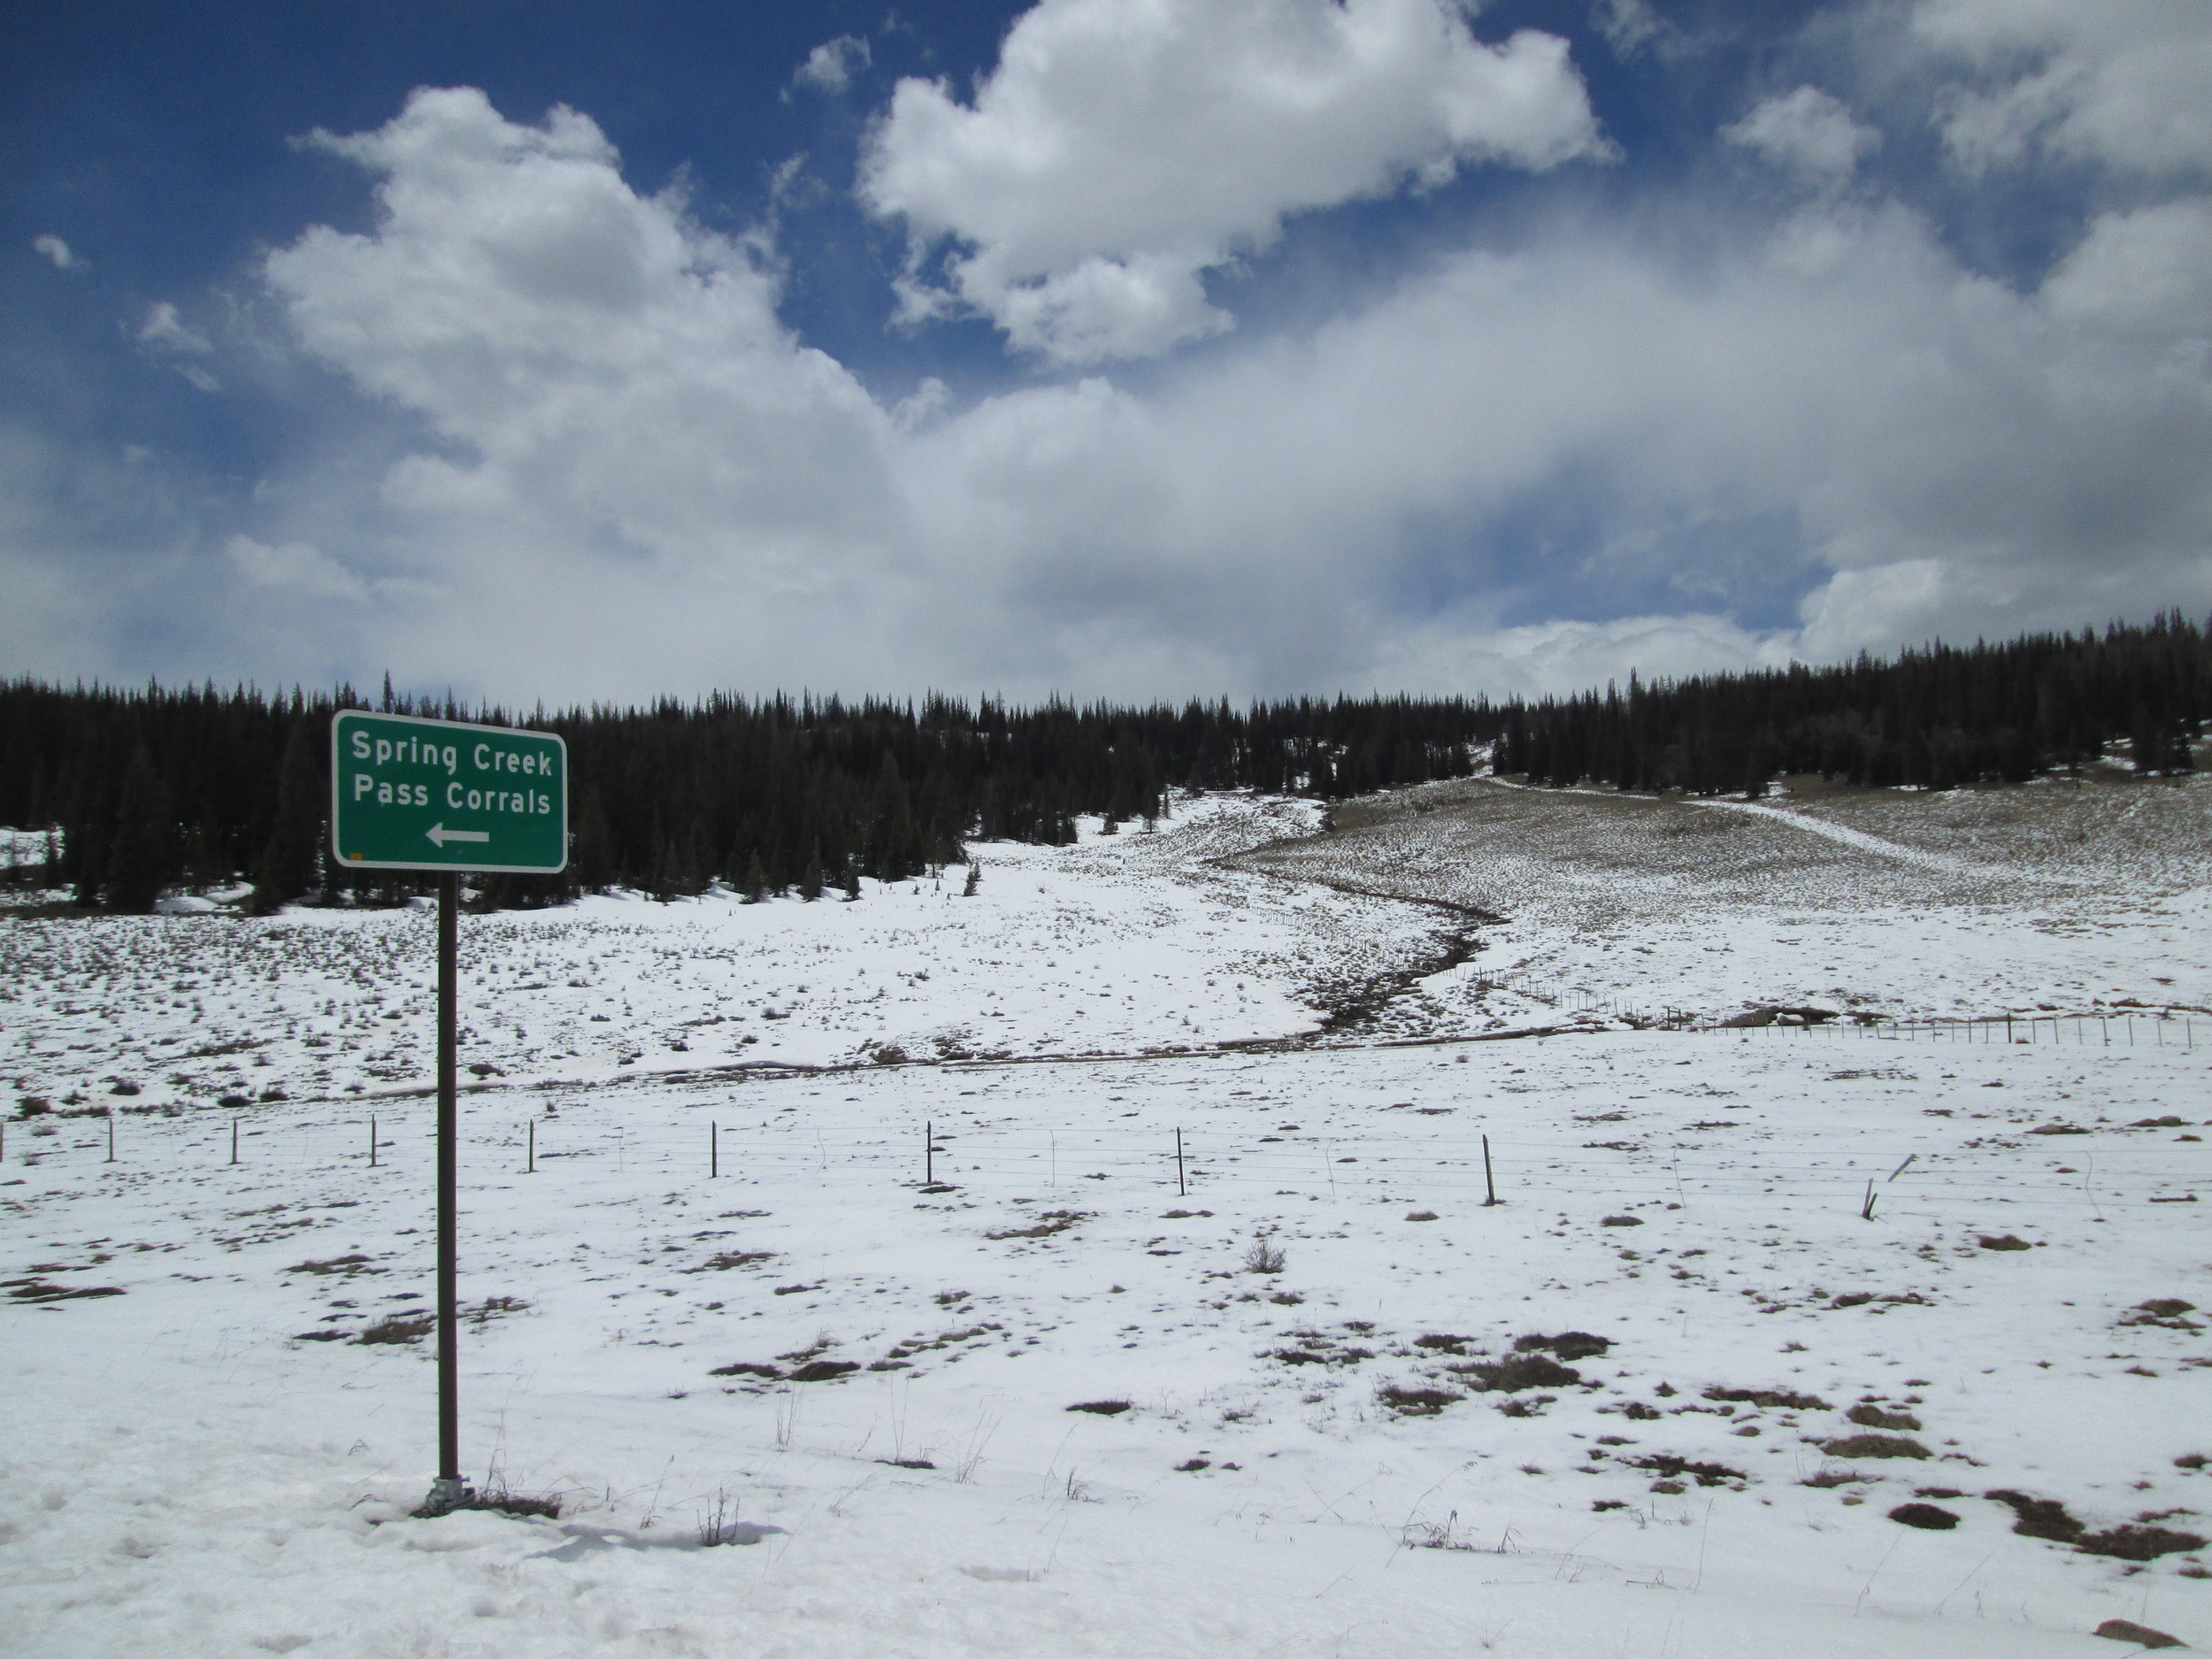 The northeast-facing, 10,800' Spring Creek Pass CODOS site, located in the sagebrush meadow seen behind the sign, in front of the trees.